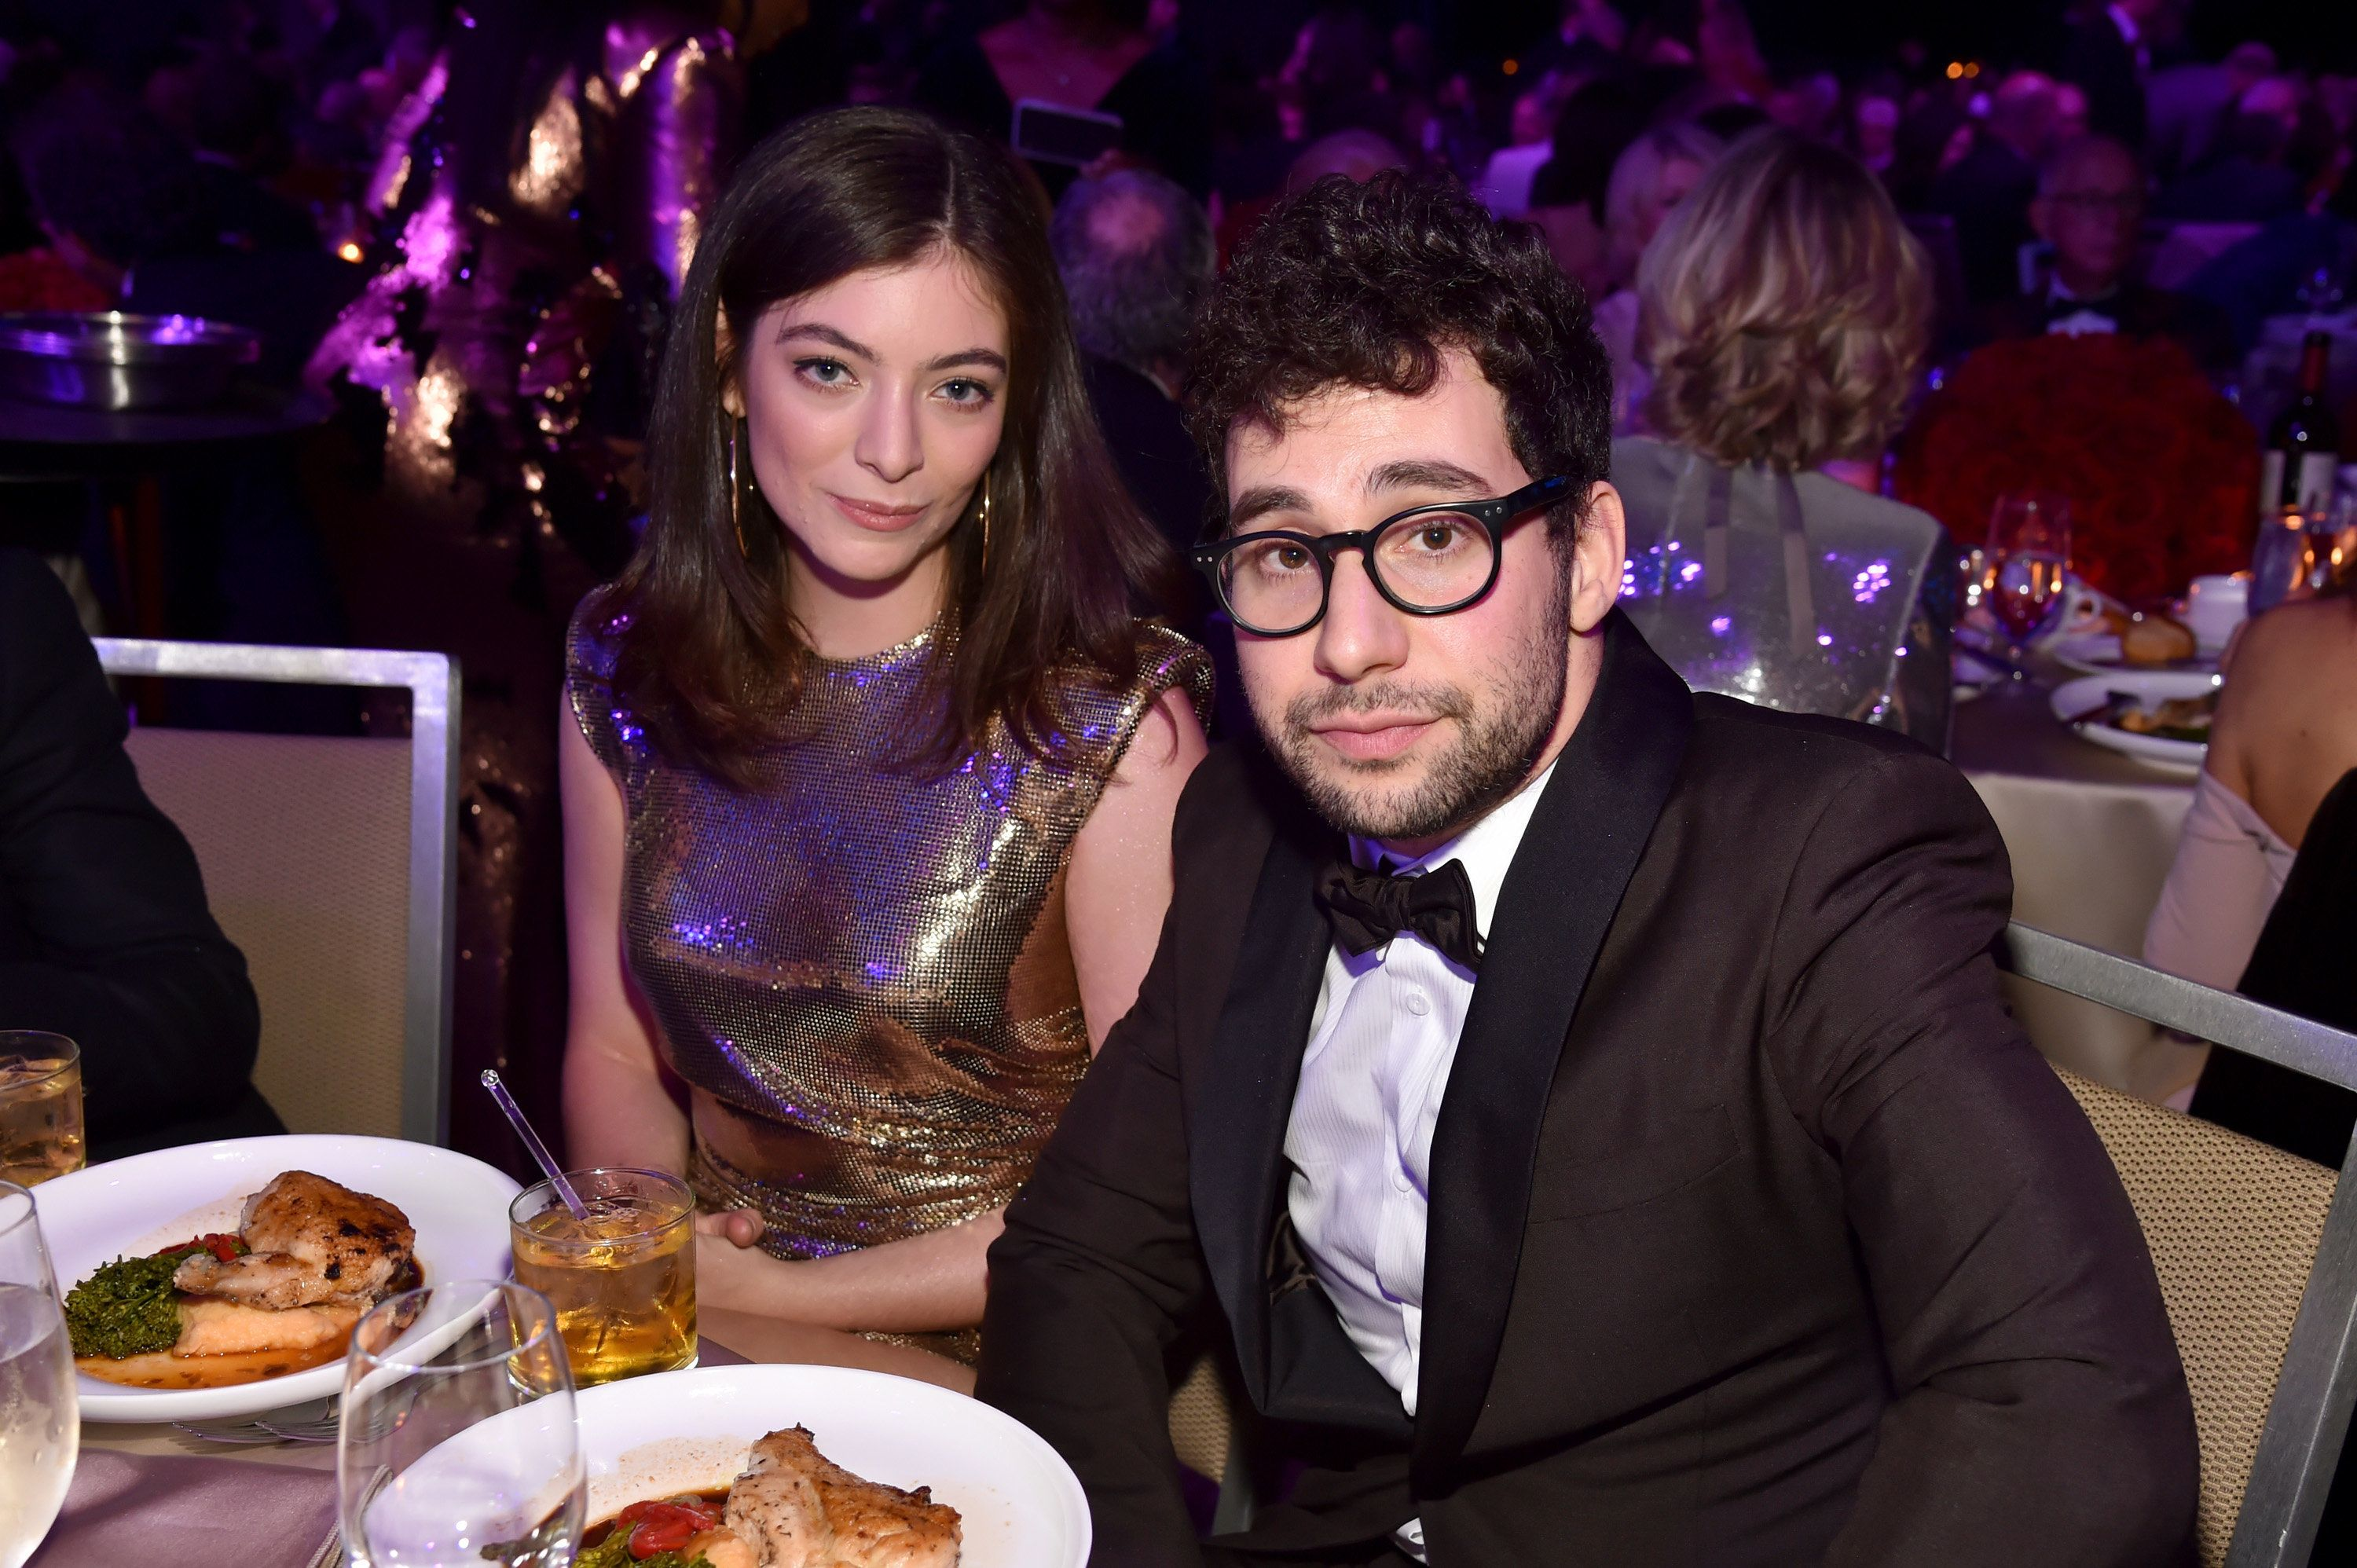 Lorde Shuts Down Rumors She's Dating Jack Antonoff, Lena Dunham's